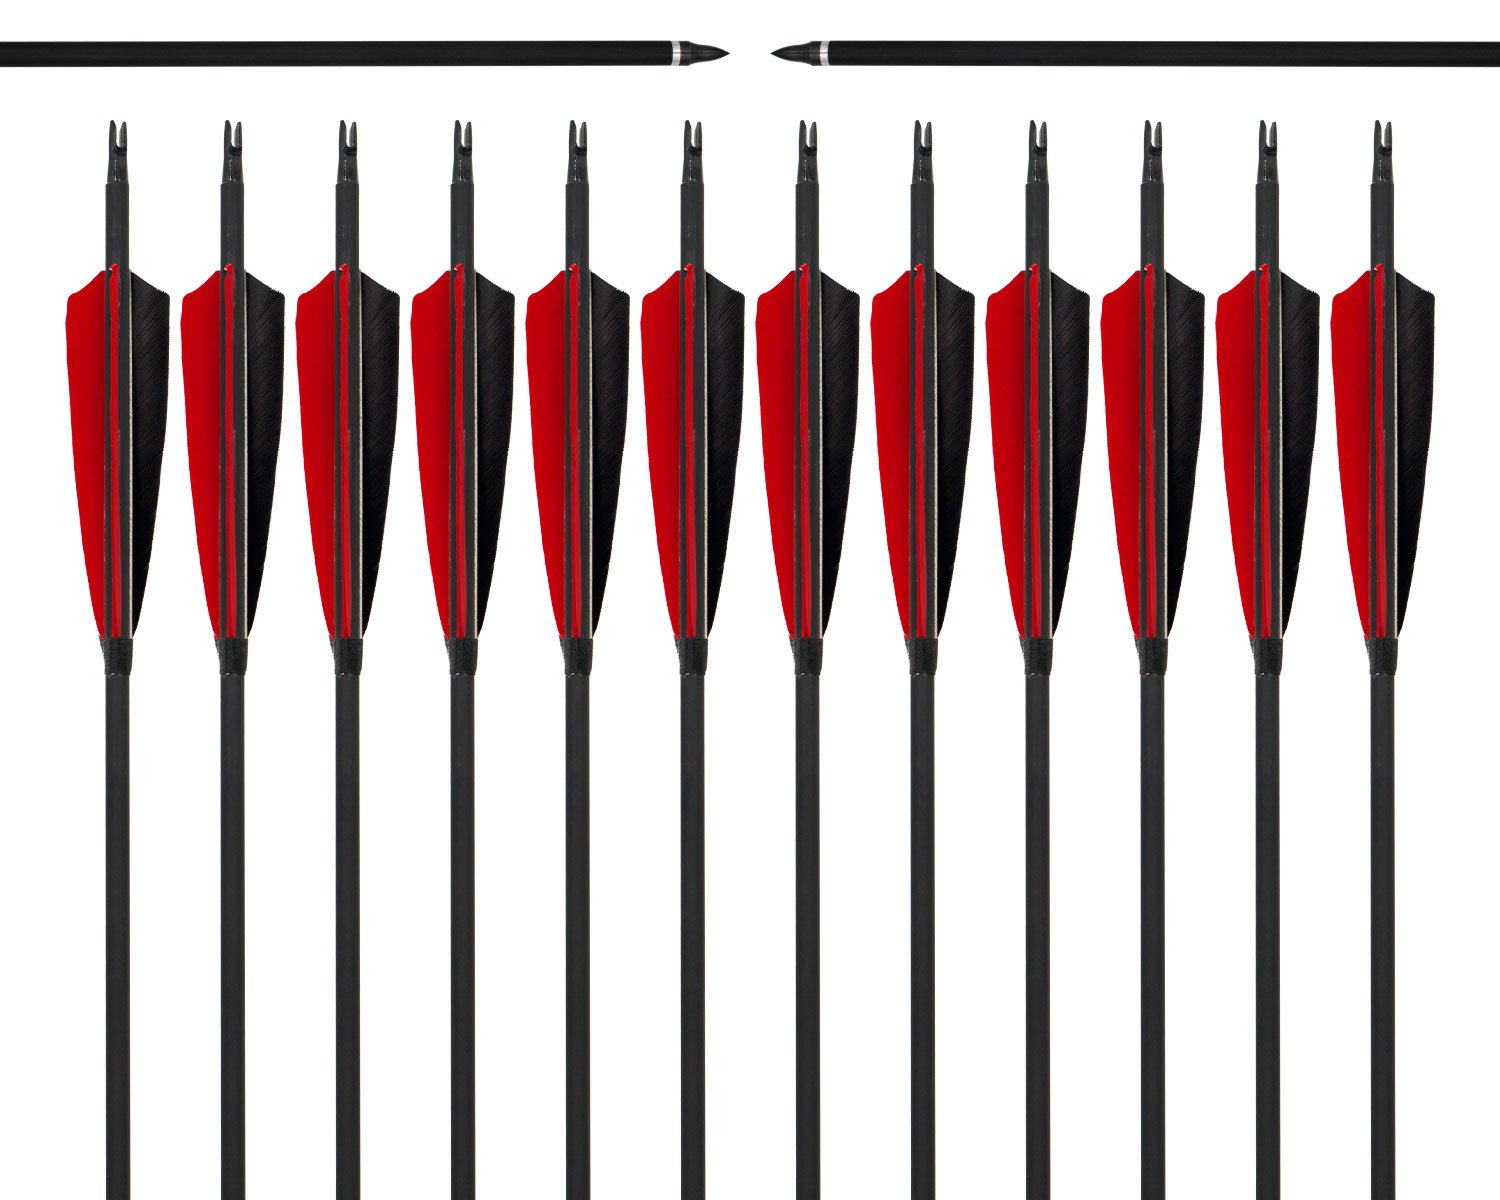 ARCHERY SHARLY 31'' Carbon Fiber Arrows Targeting Practice Arrows,5'' Black & Red Natural Feather Fletching and Replacement Screw-in Tips for Recurve Traditional Long Bow (12 Pack) by ARCHERY SHARLY (Image #1)